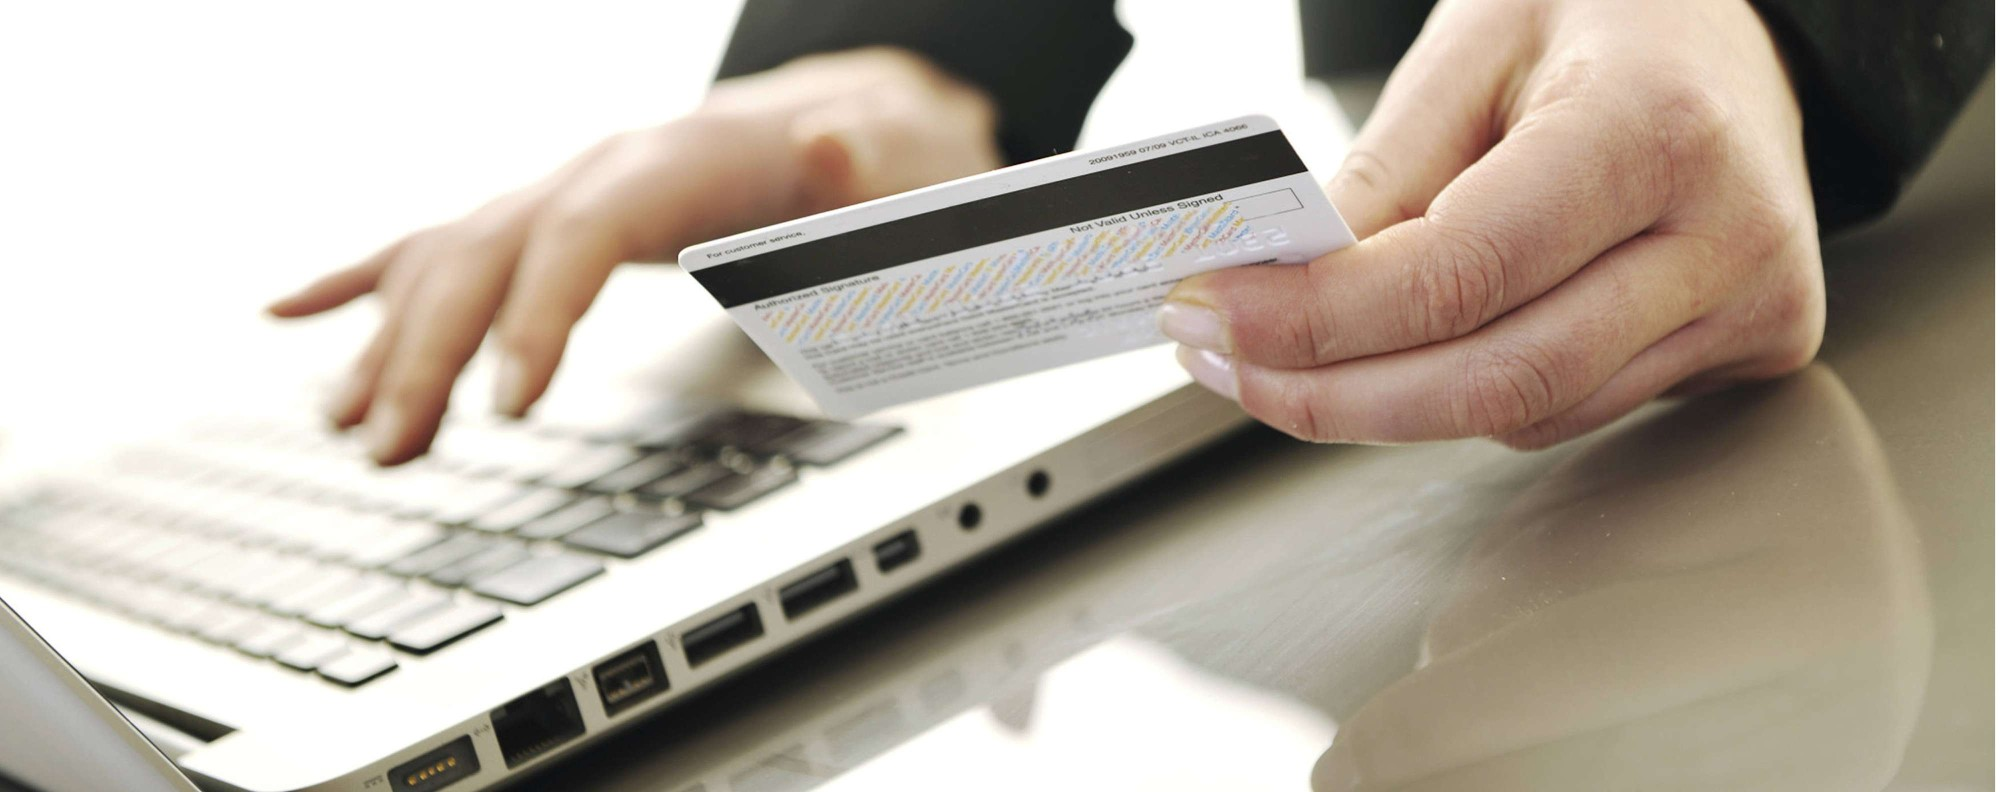 Online banking is on the rise. Photo: Shutterstock